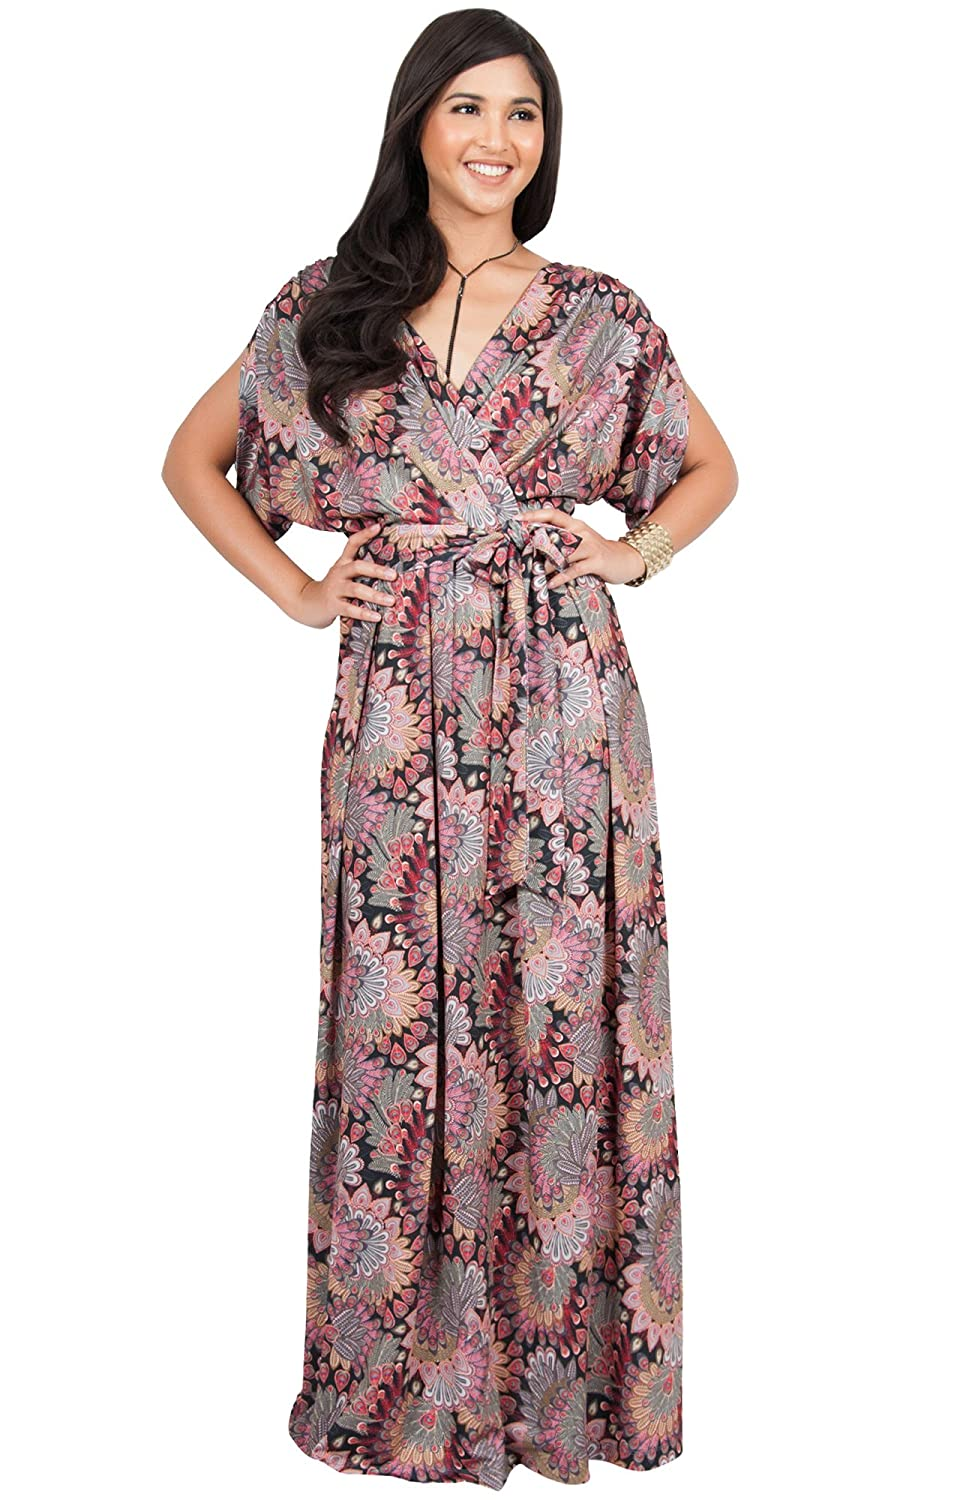 9a91b07cce FABRIC TYPE - Milk Silk Jersey (5% Spandex) GARMENT CARE - Hand or machine  washable. Can be dry-cleaned if desired. PLUS SIZE - This great short sleeve  maxi ...